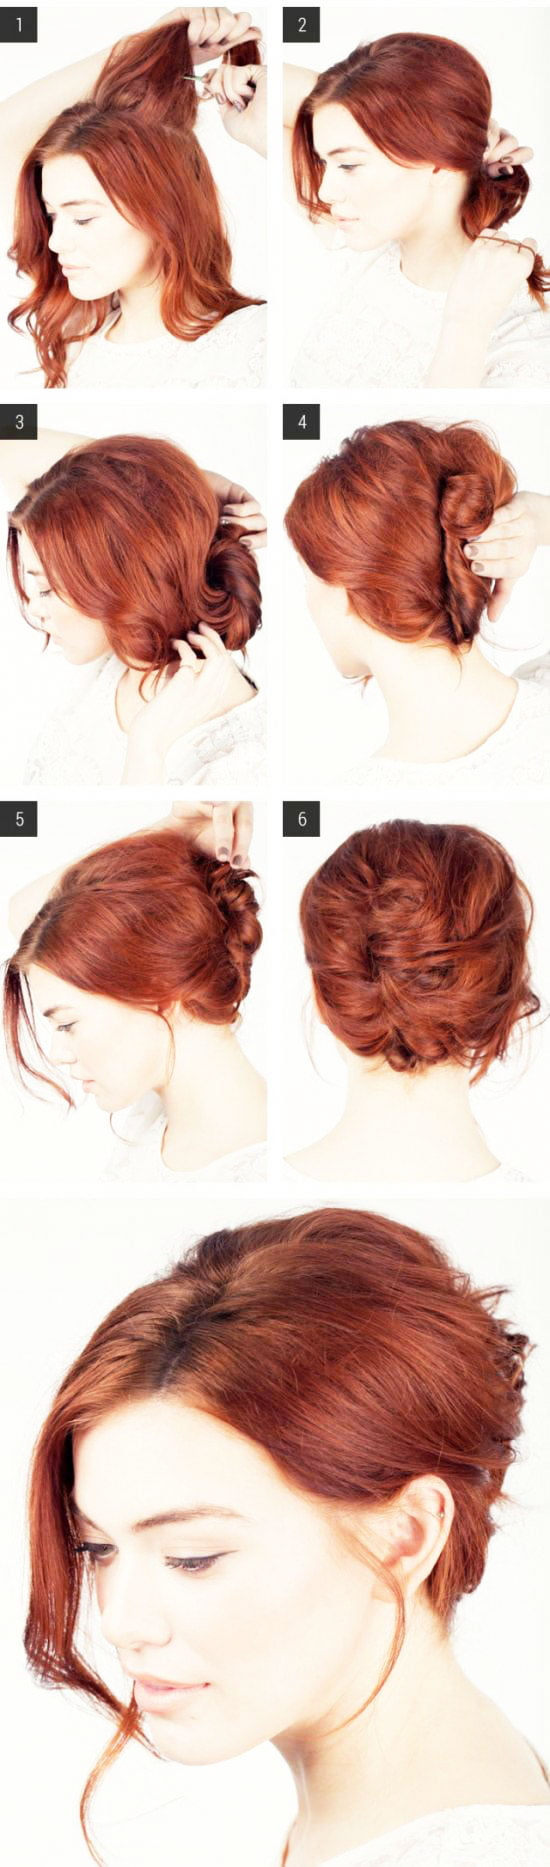 Classic Shell hairstyle